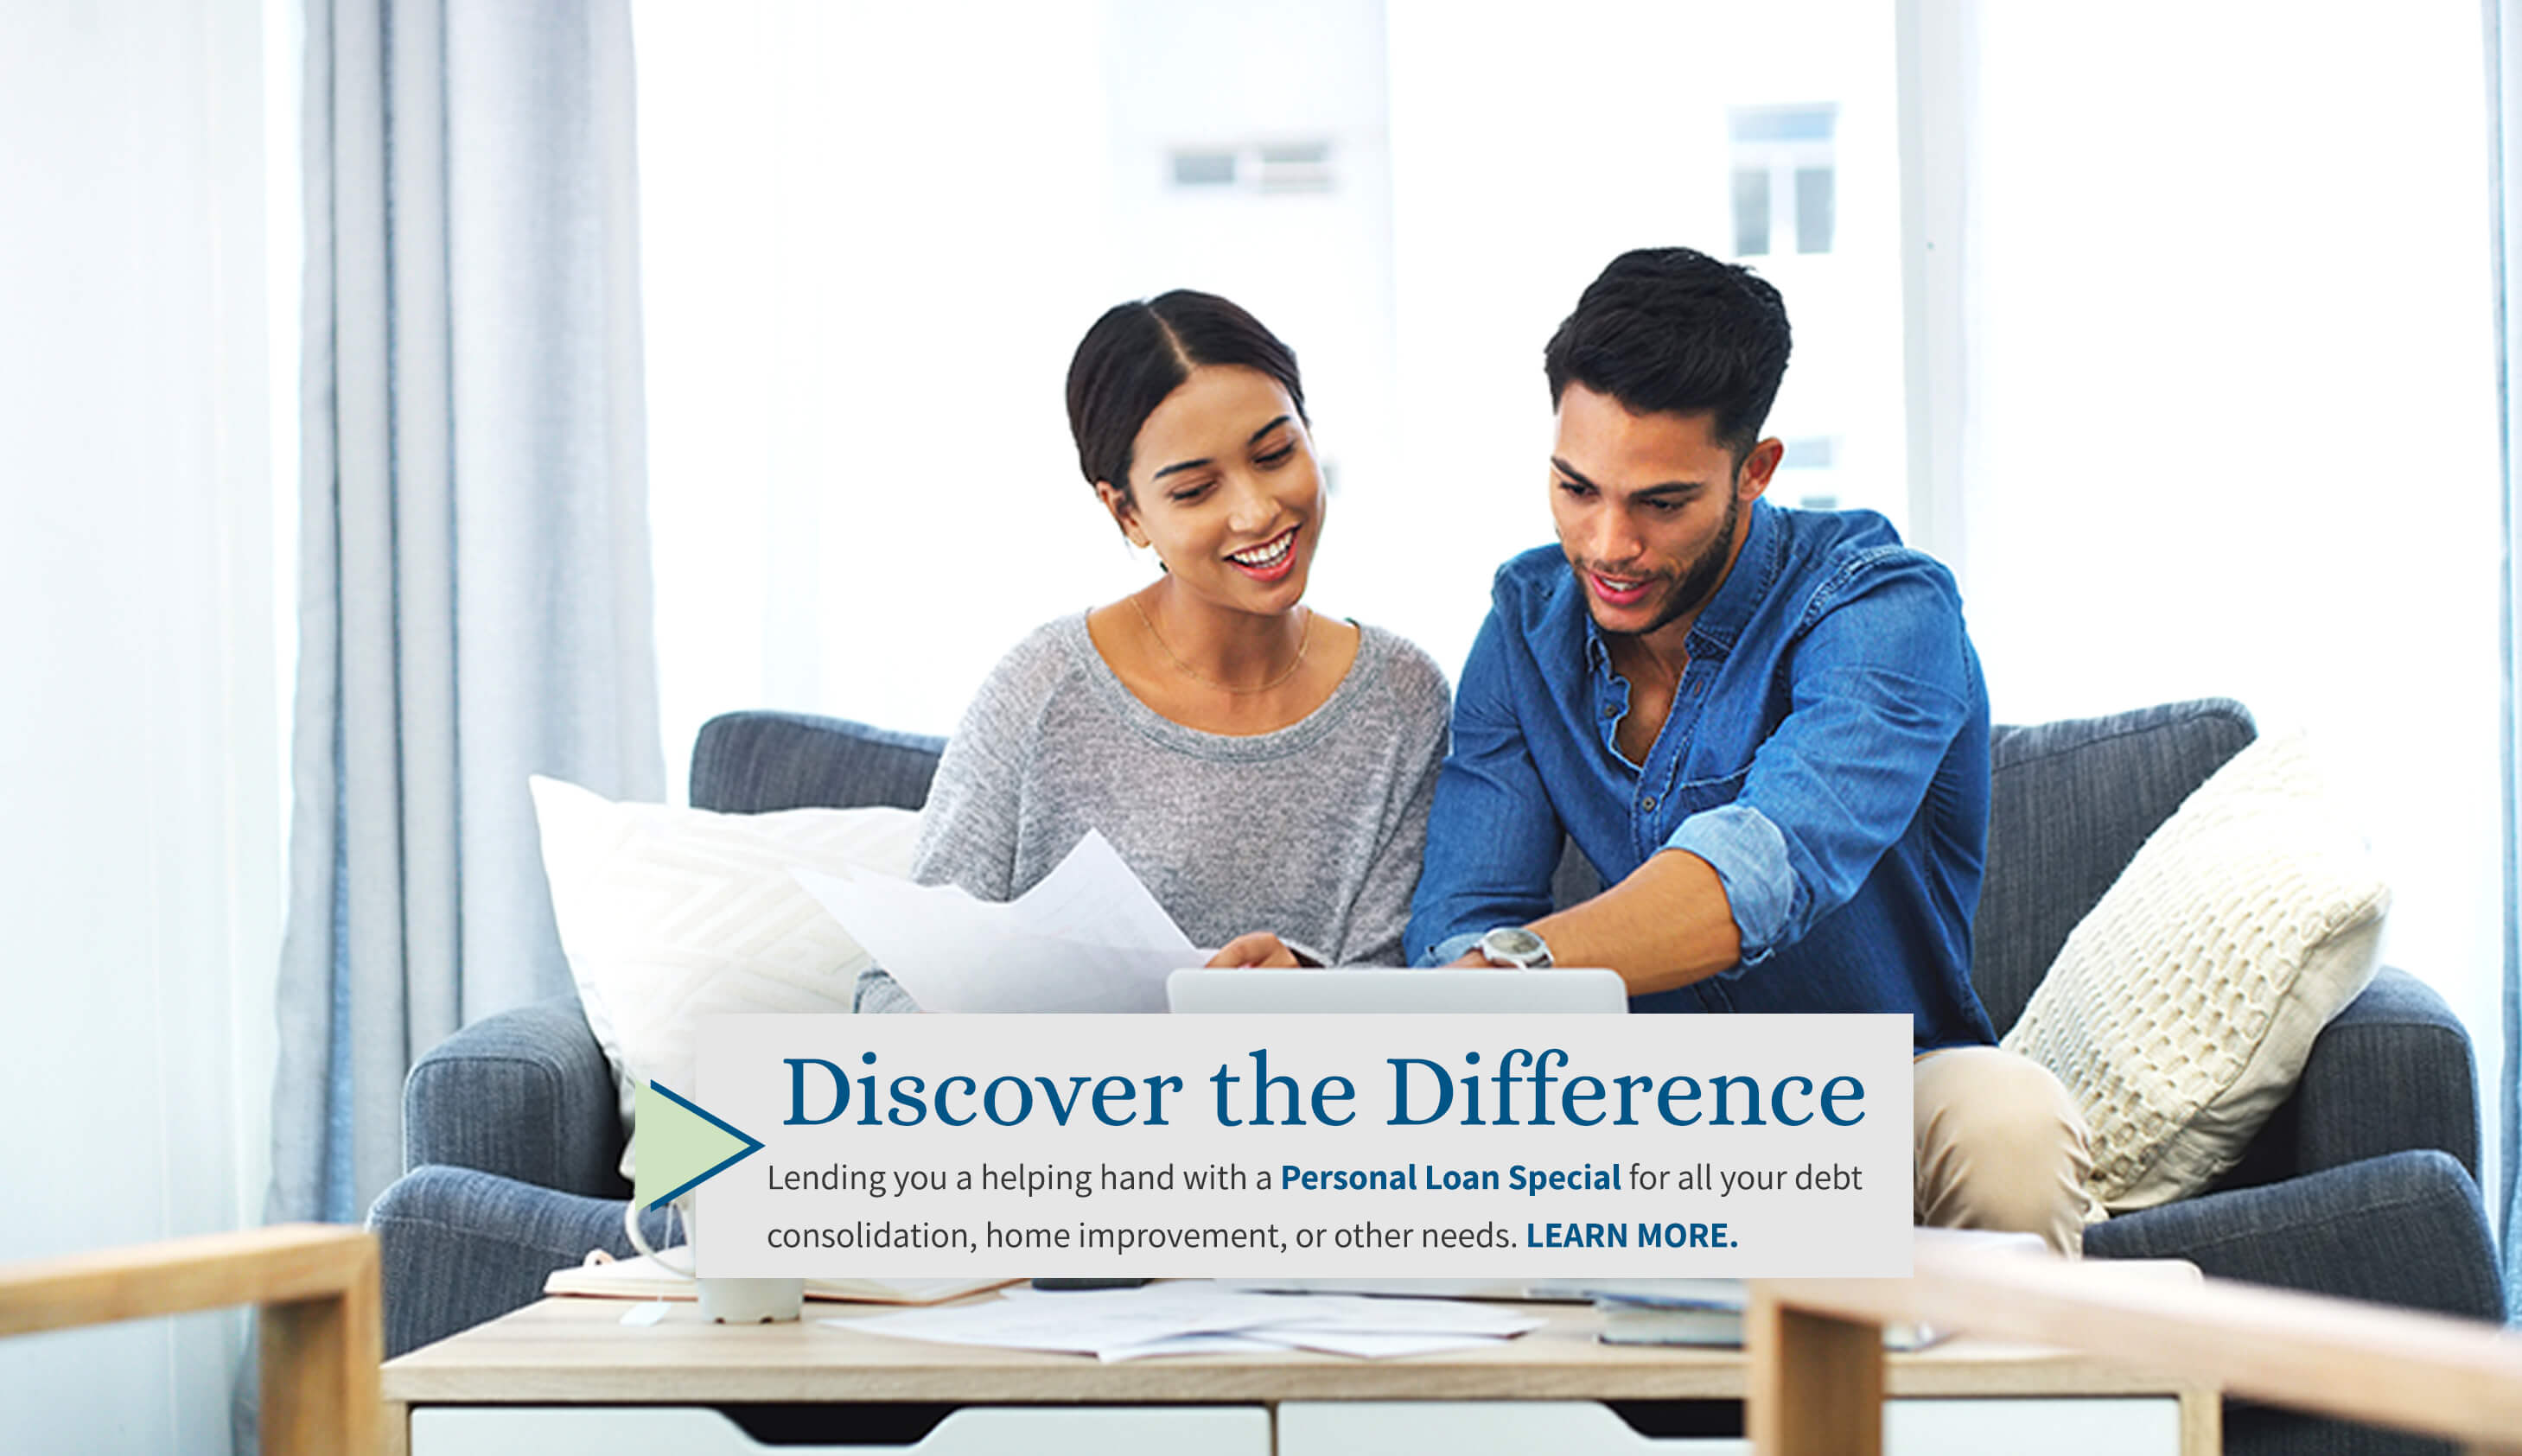 We can make it better together today. Discover the Difference of a Hickam FCU Personal loan, for all your debt consolidation or other financial needs. Learn More.